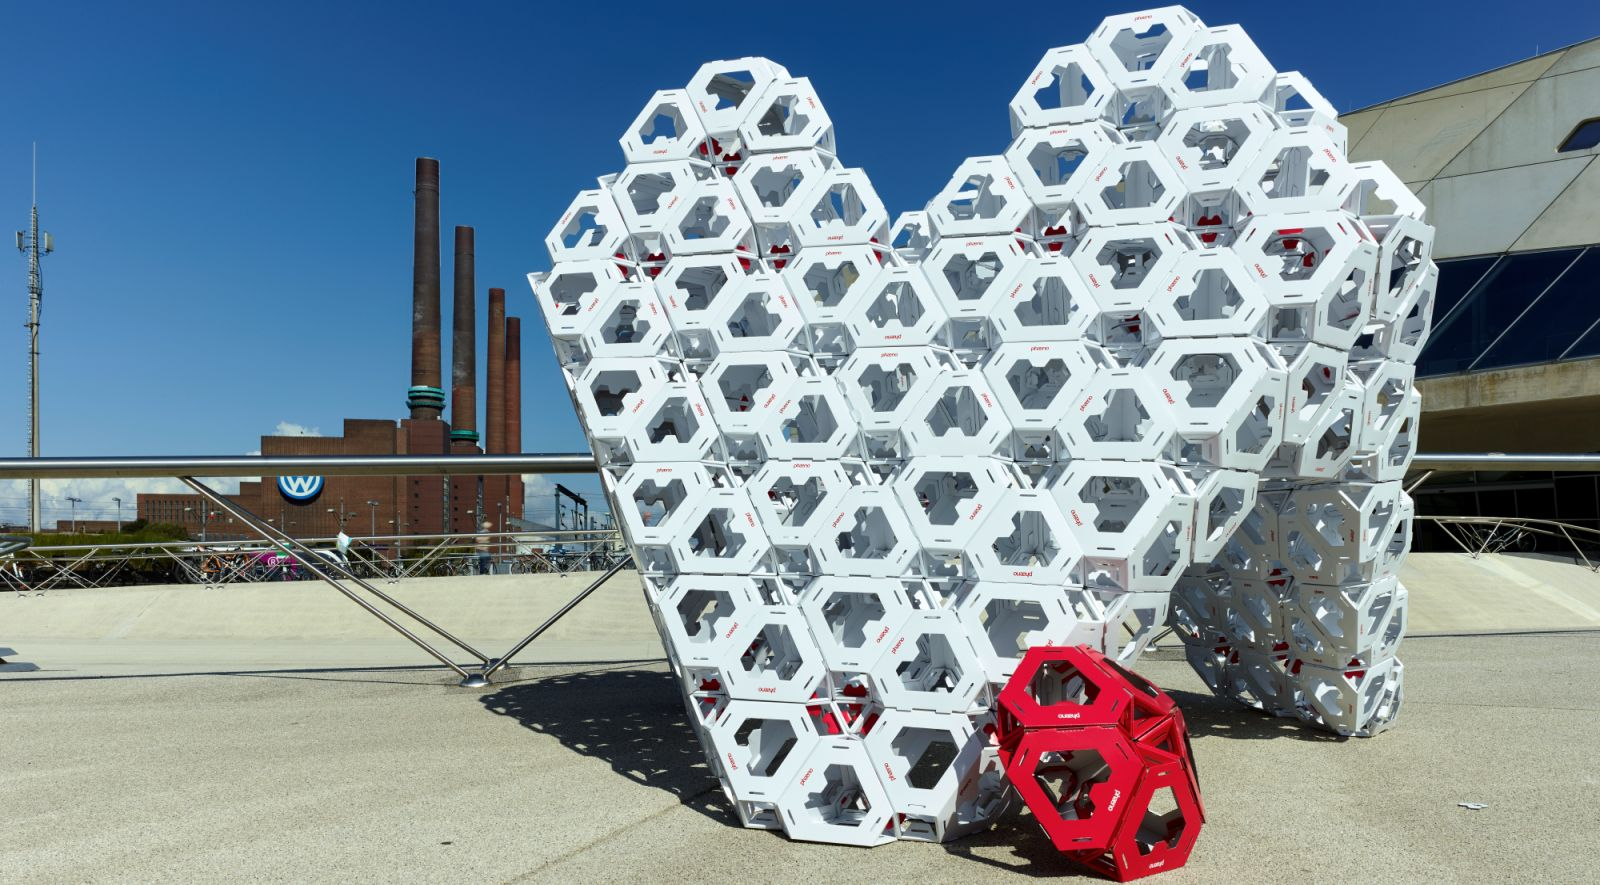 3000 heart-shaped red and white